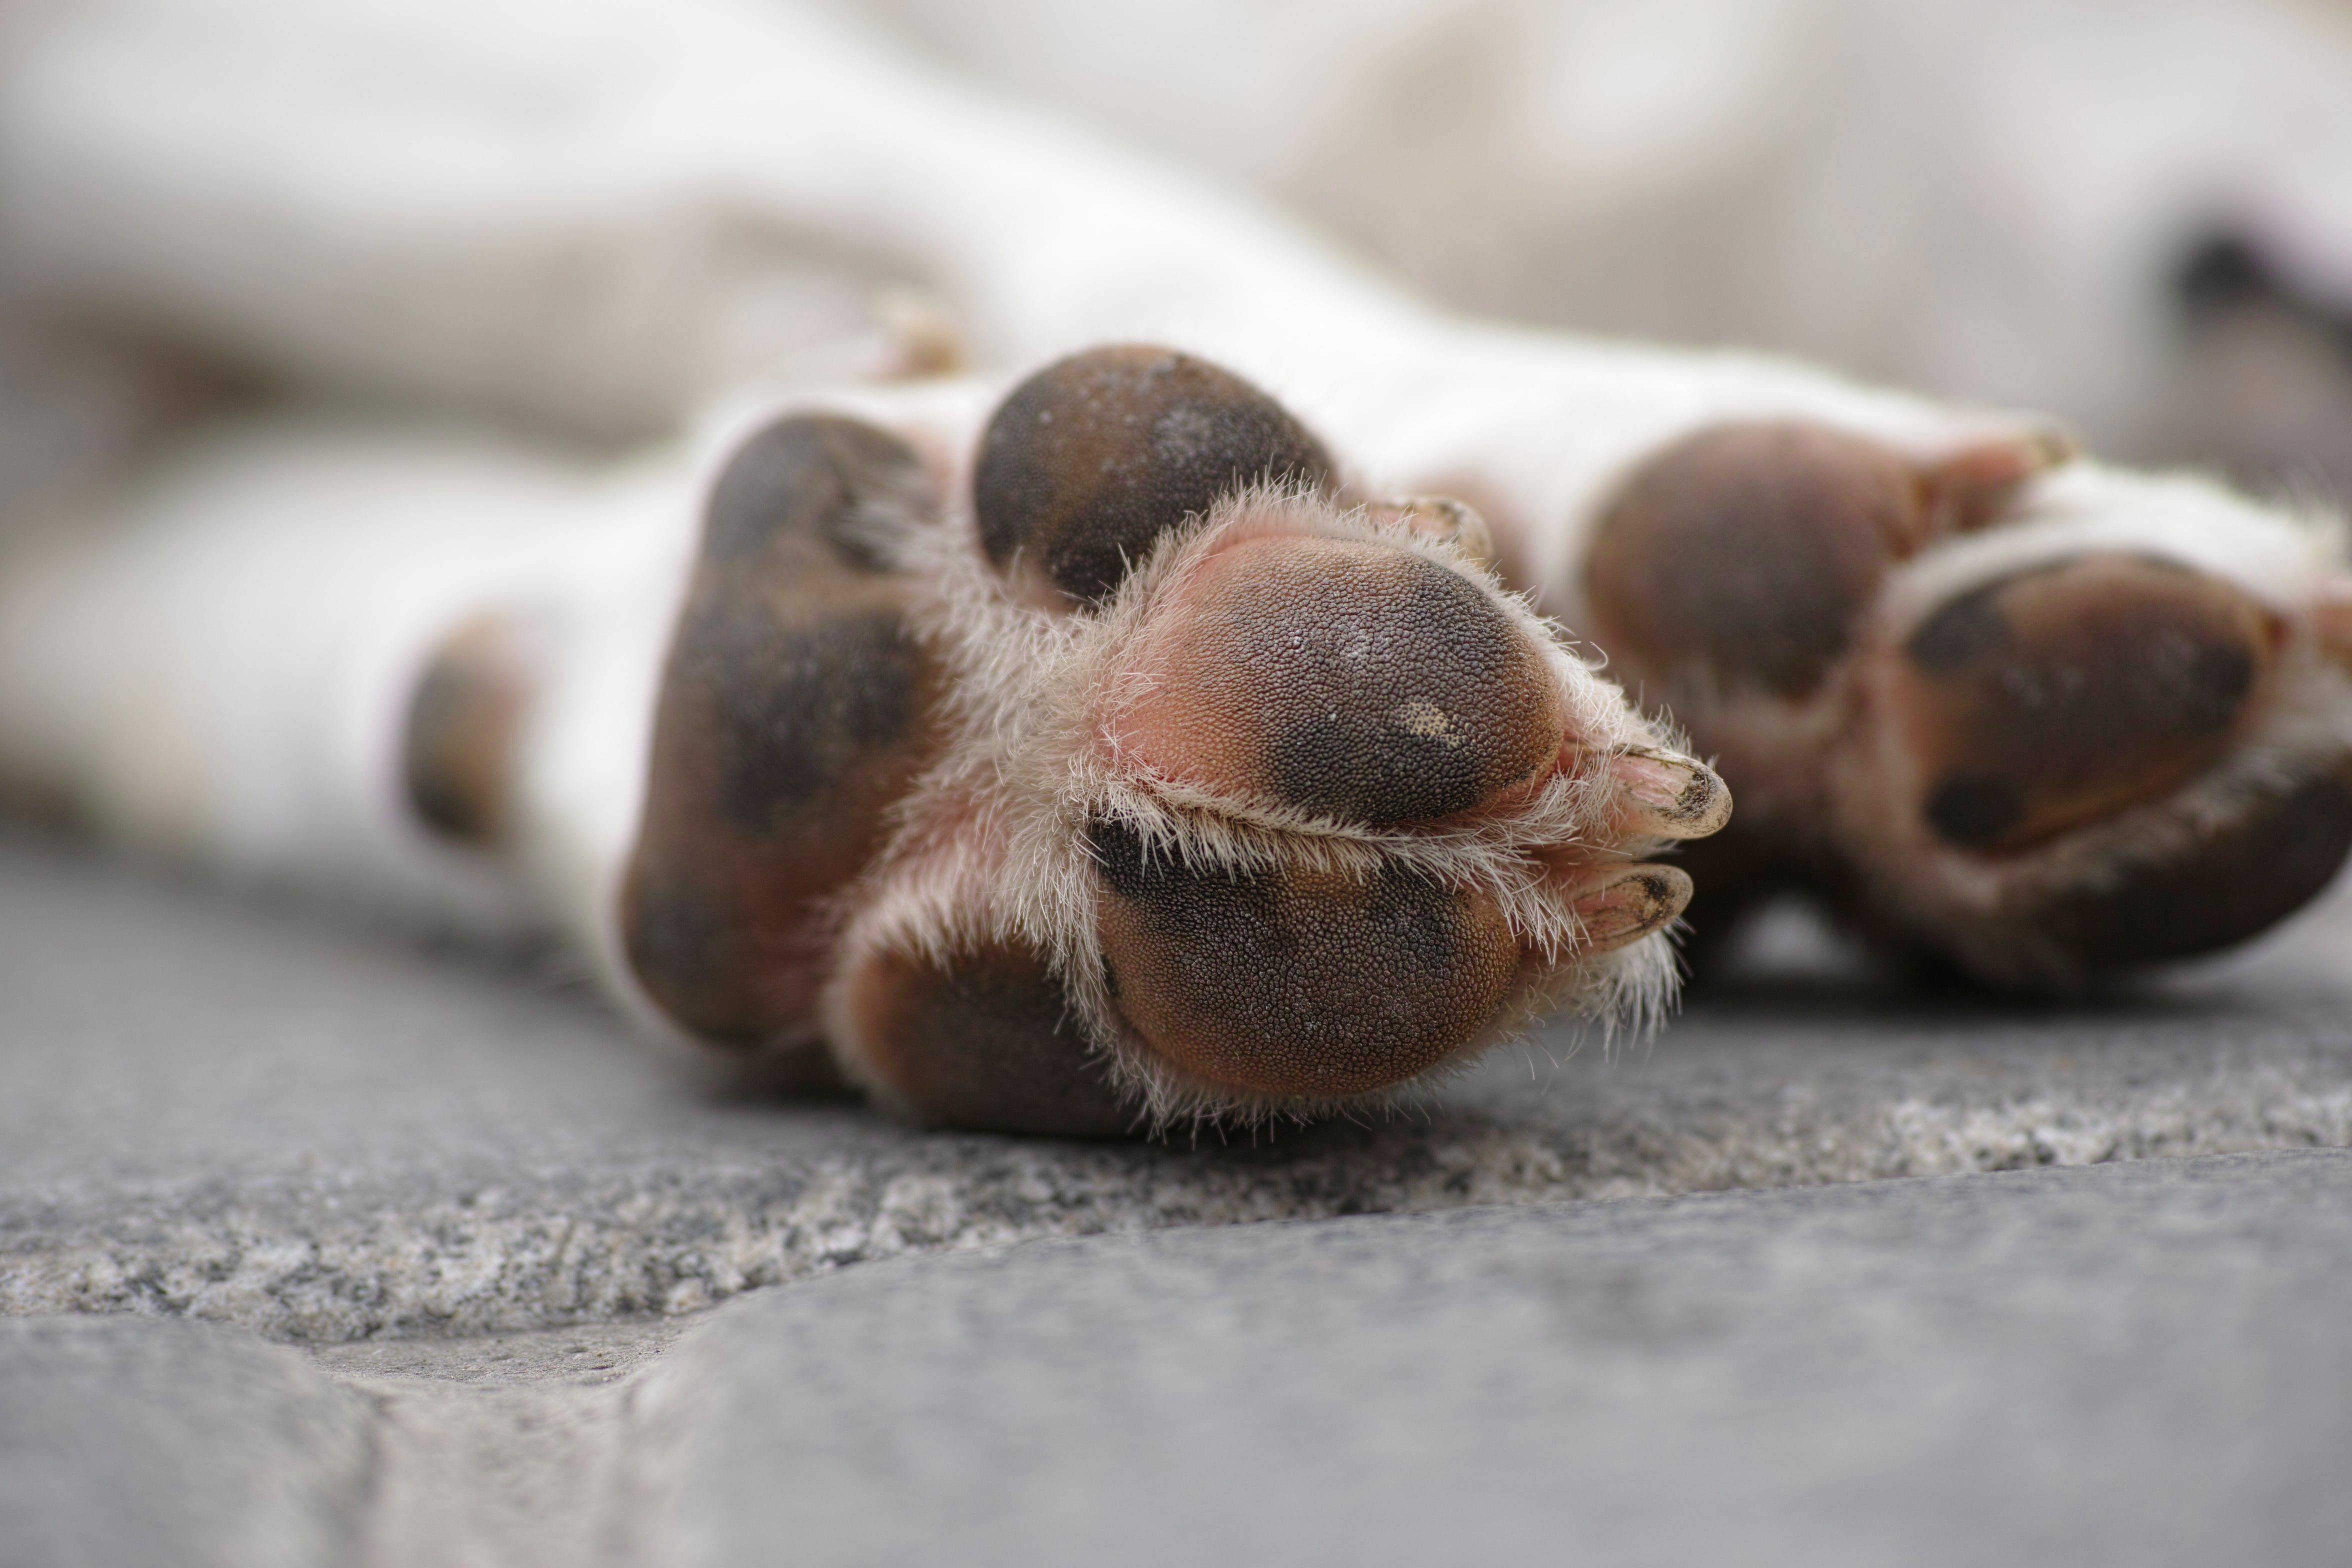 Shallow Focus Photography of White Dog's Paws